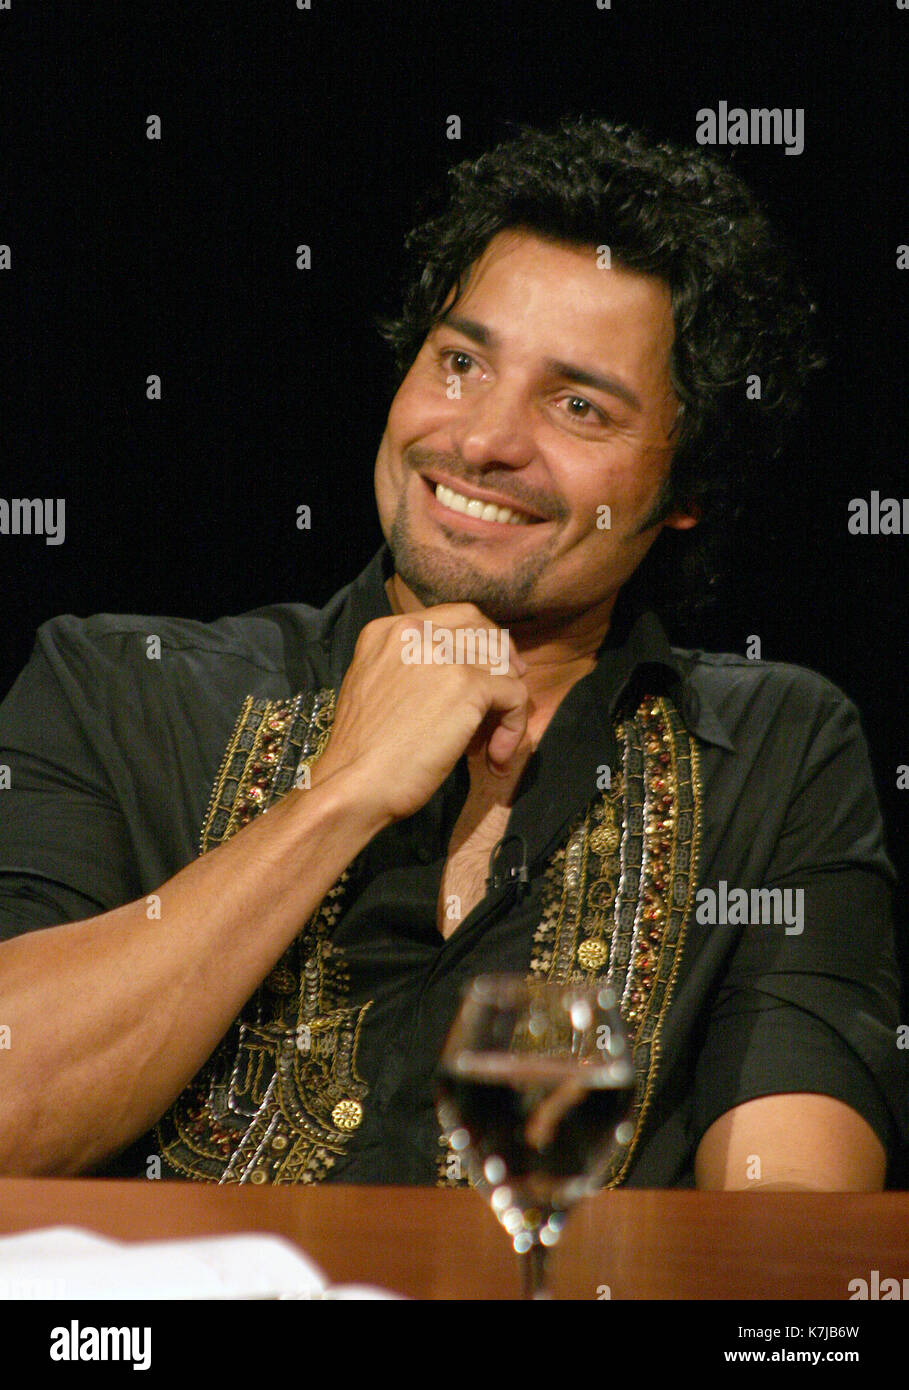 Chayanne Being Interviewed By Jaime Bayly On His Program On Mega Tv Stock Photo Alamy Volver a ser un niño. https www alamy com chayanne being interviewed by jaime bayly on his program on mega tv image159599857 html